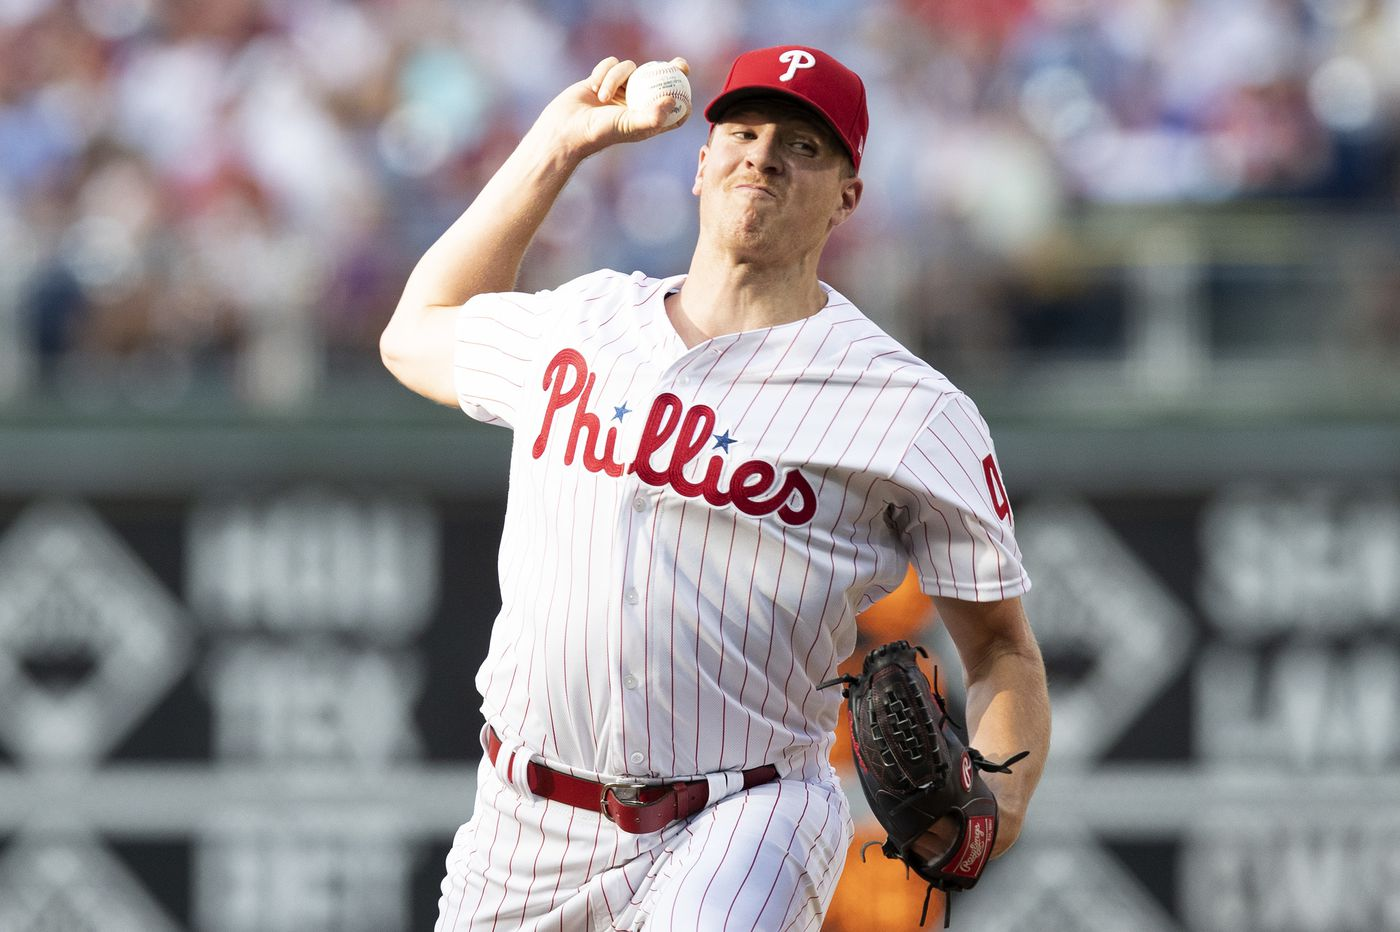 Phillies' Nick Pivetta ready for another chance after lost season